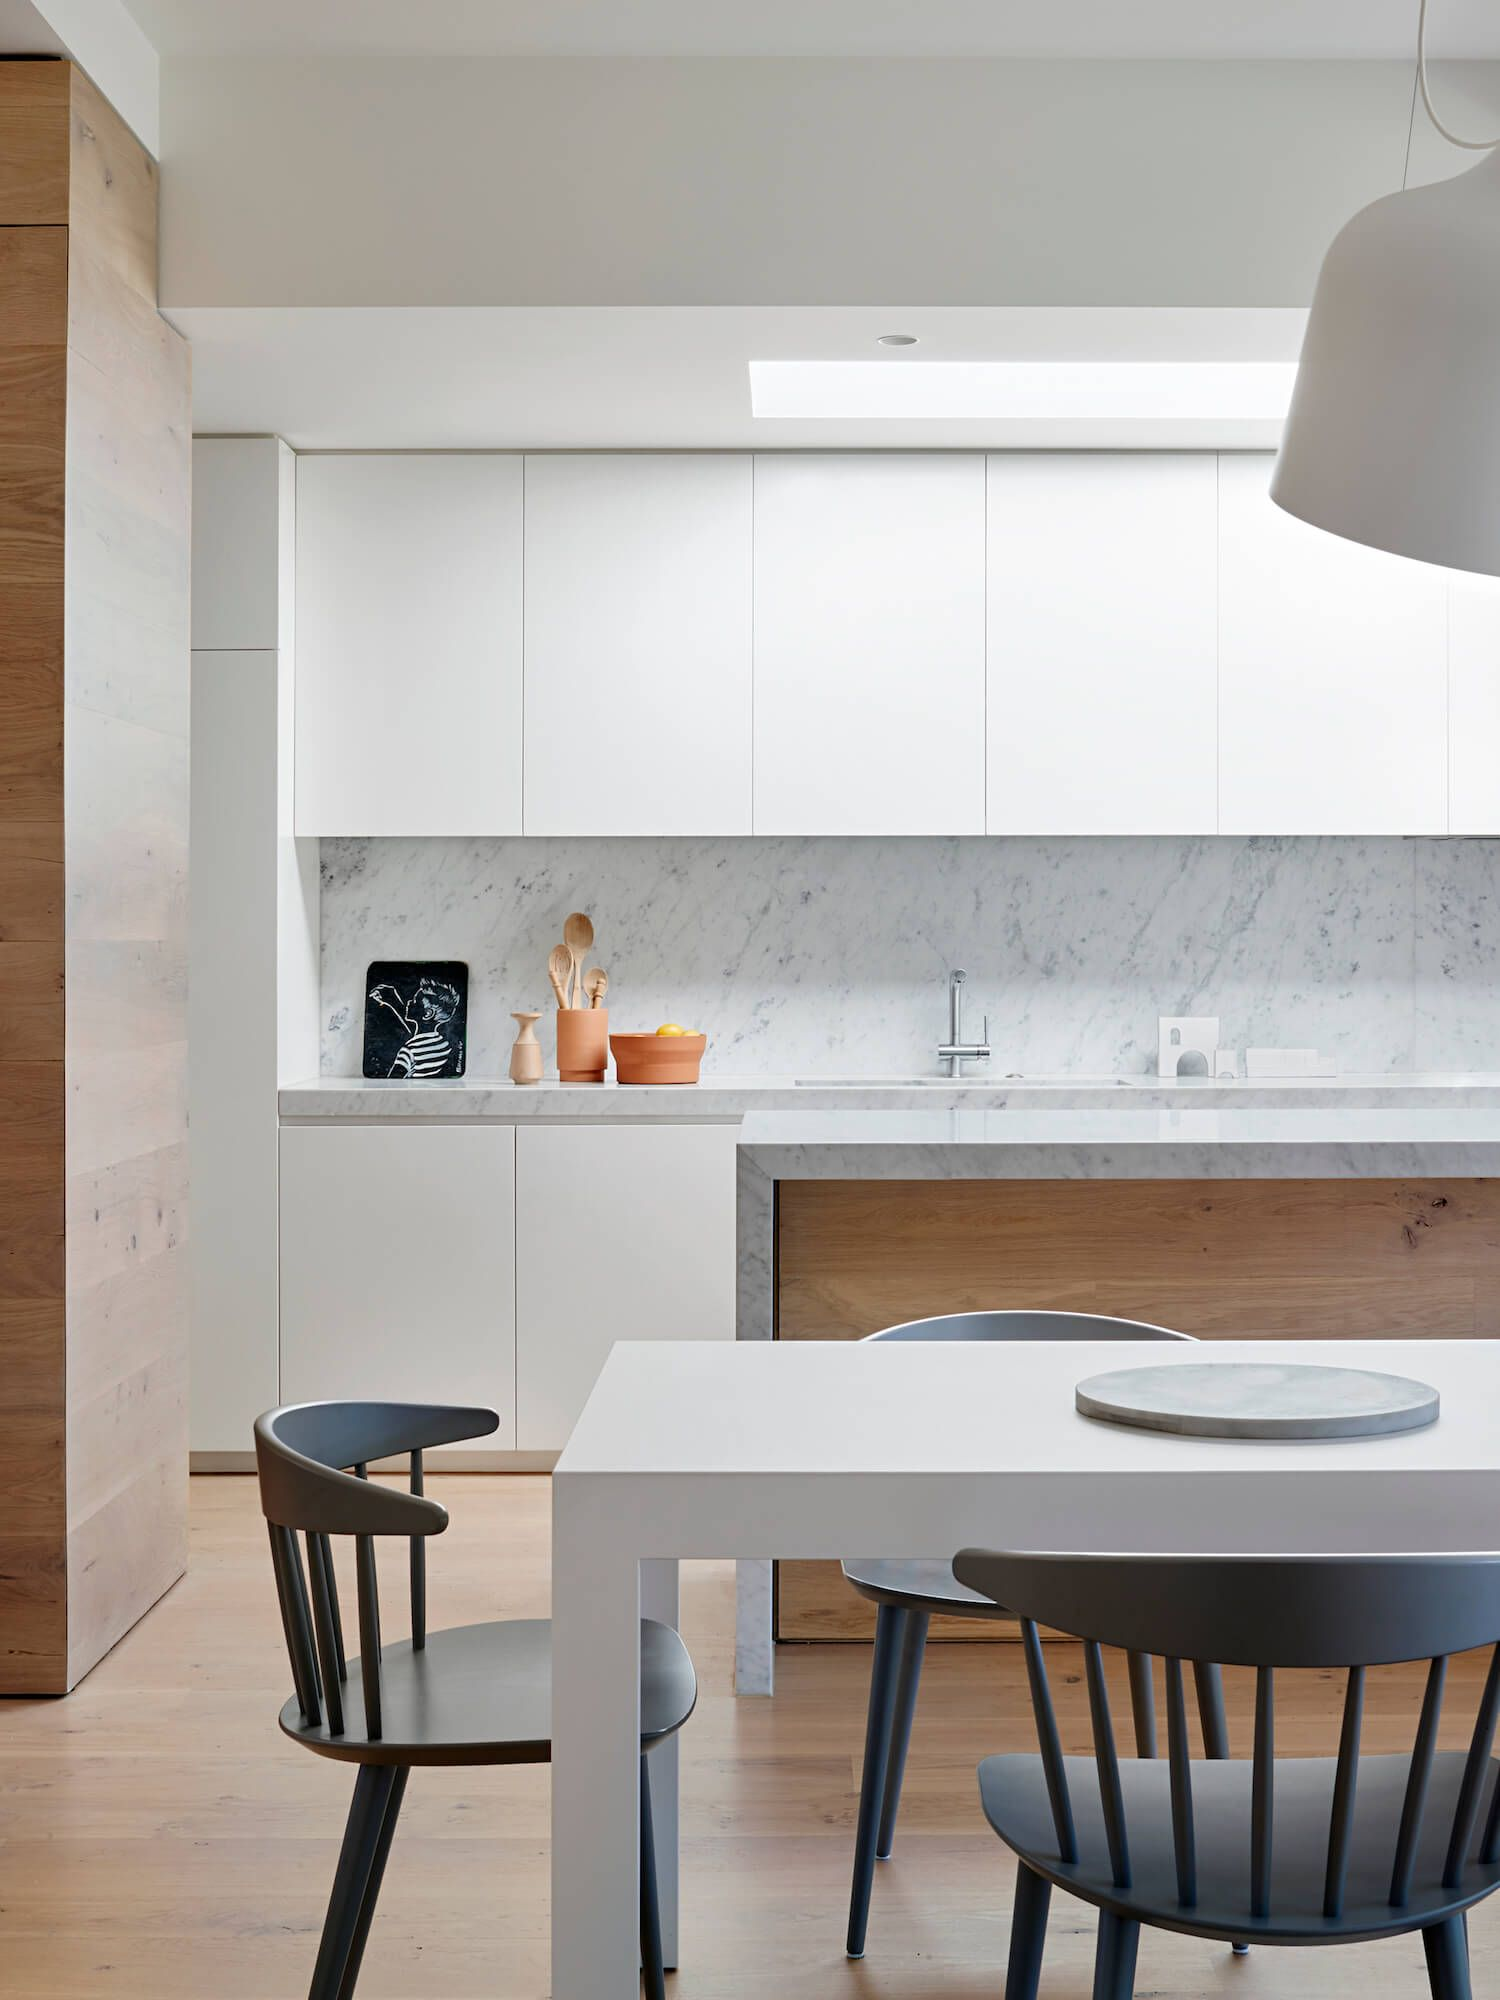 Malvern East by Made by Cohen and Penny Kinsella